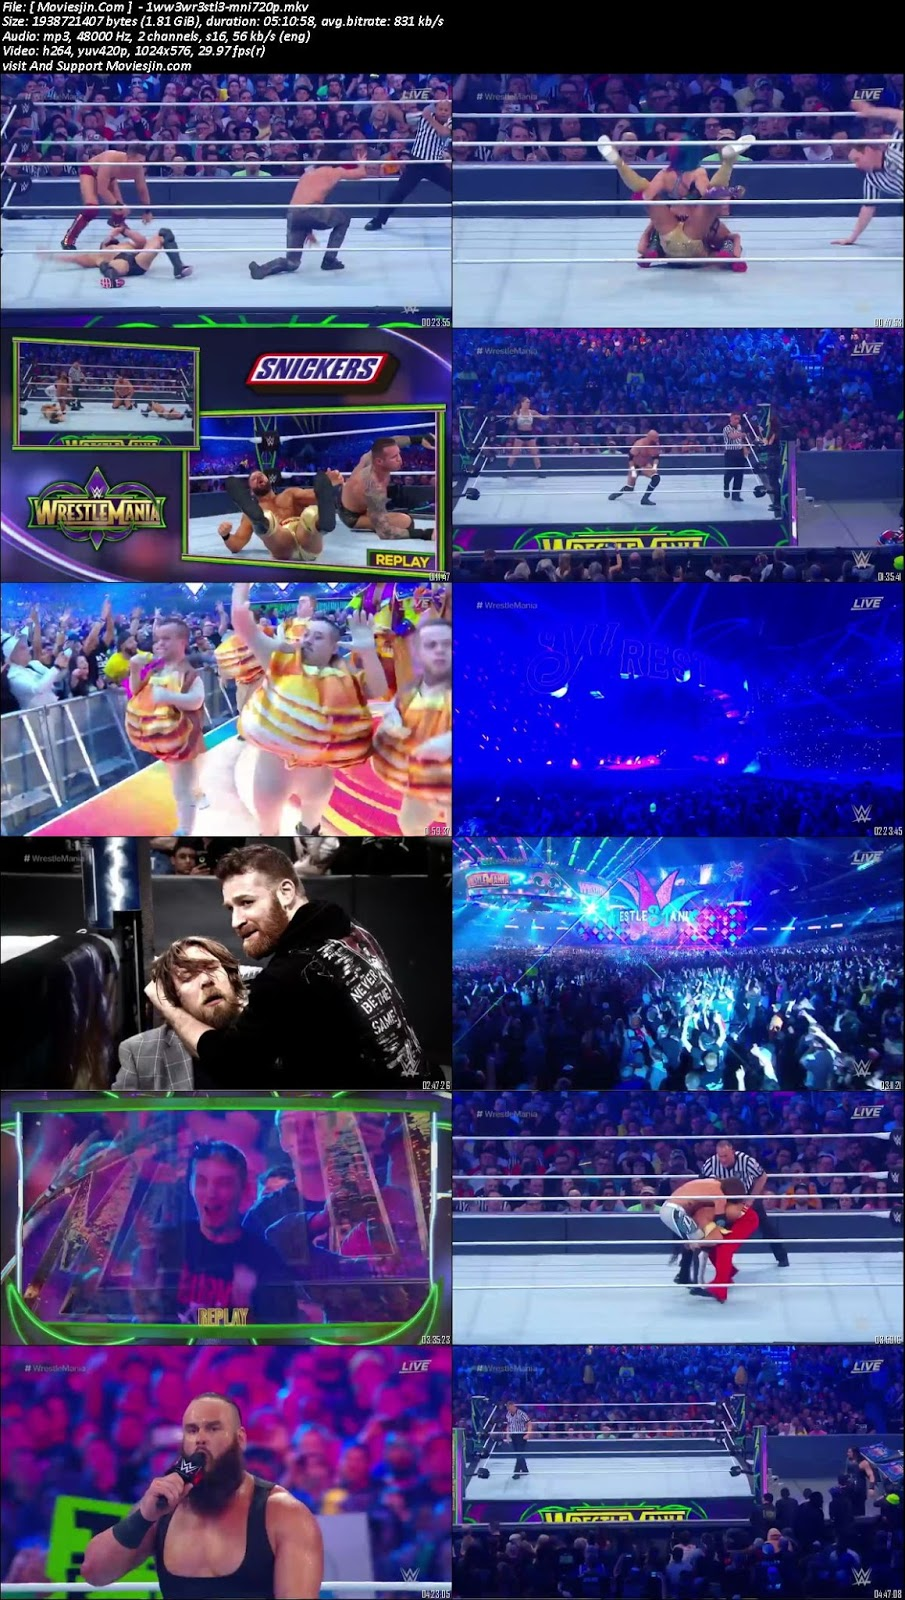 watch online WWE Wrestlemania 34thh 2018 PPV WEB-DL English 576p 9xmovies